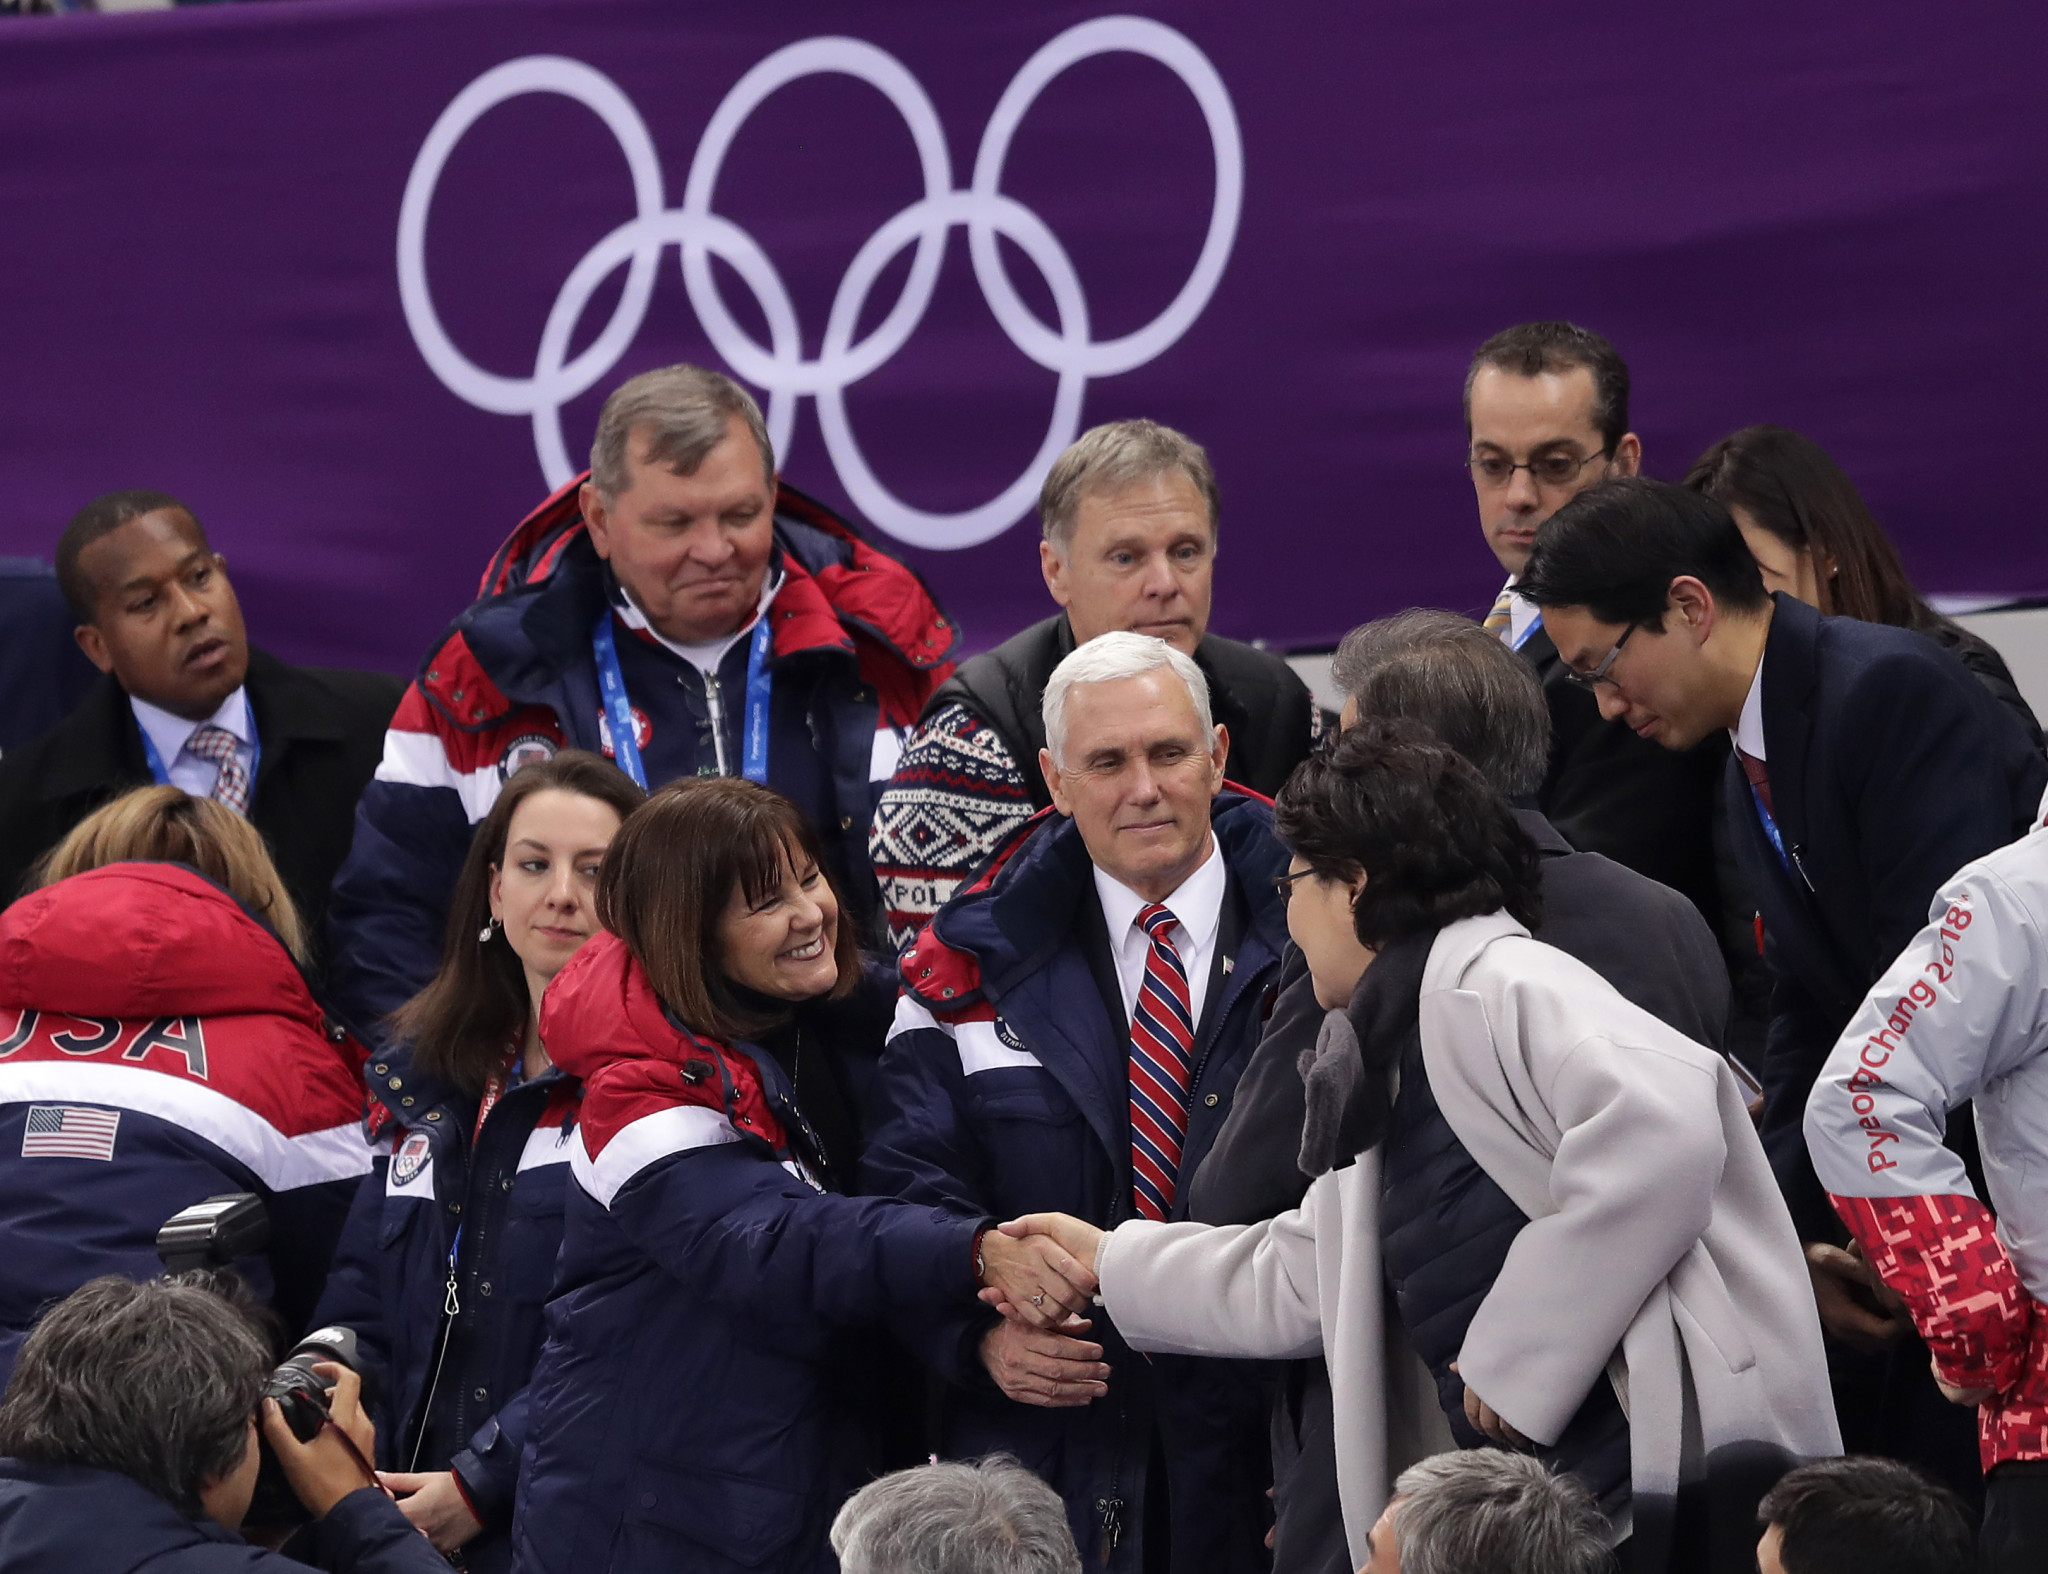 Mike Pence headed the US delegation at the Opening Ceremony of Pyeongchang 2018 ©Getty Images